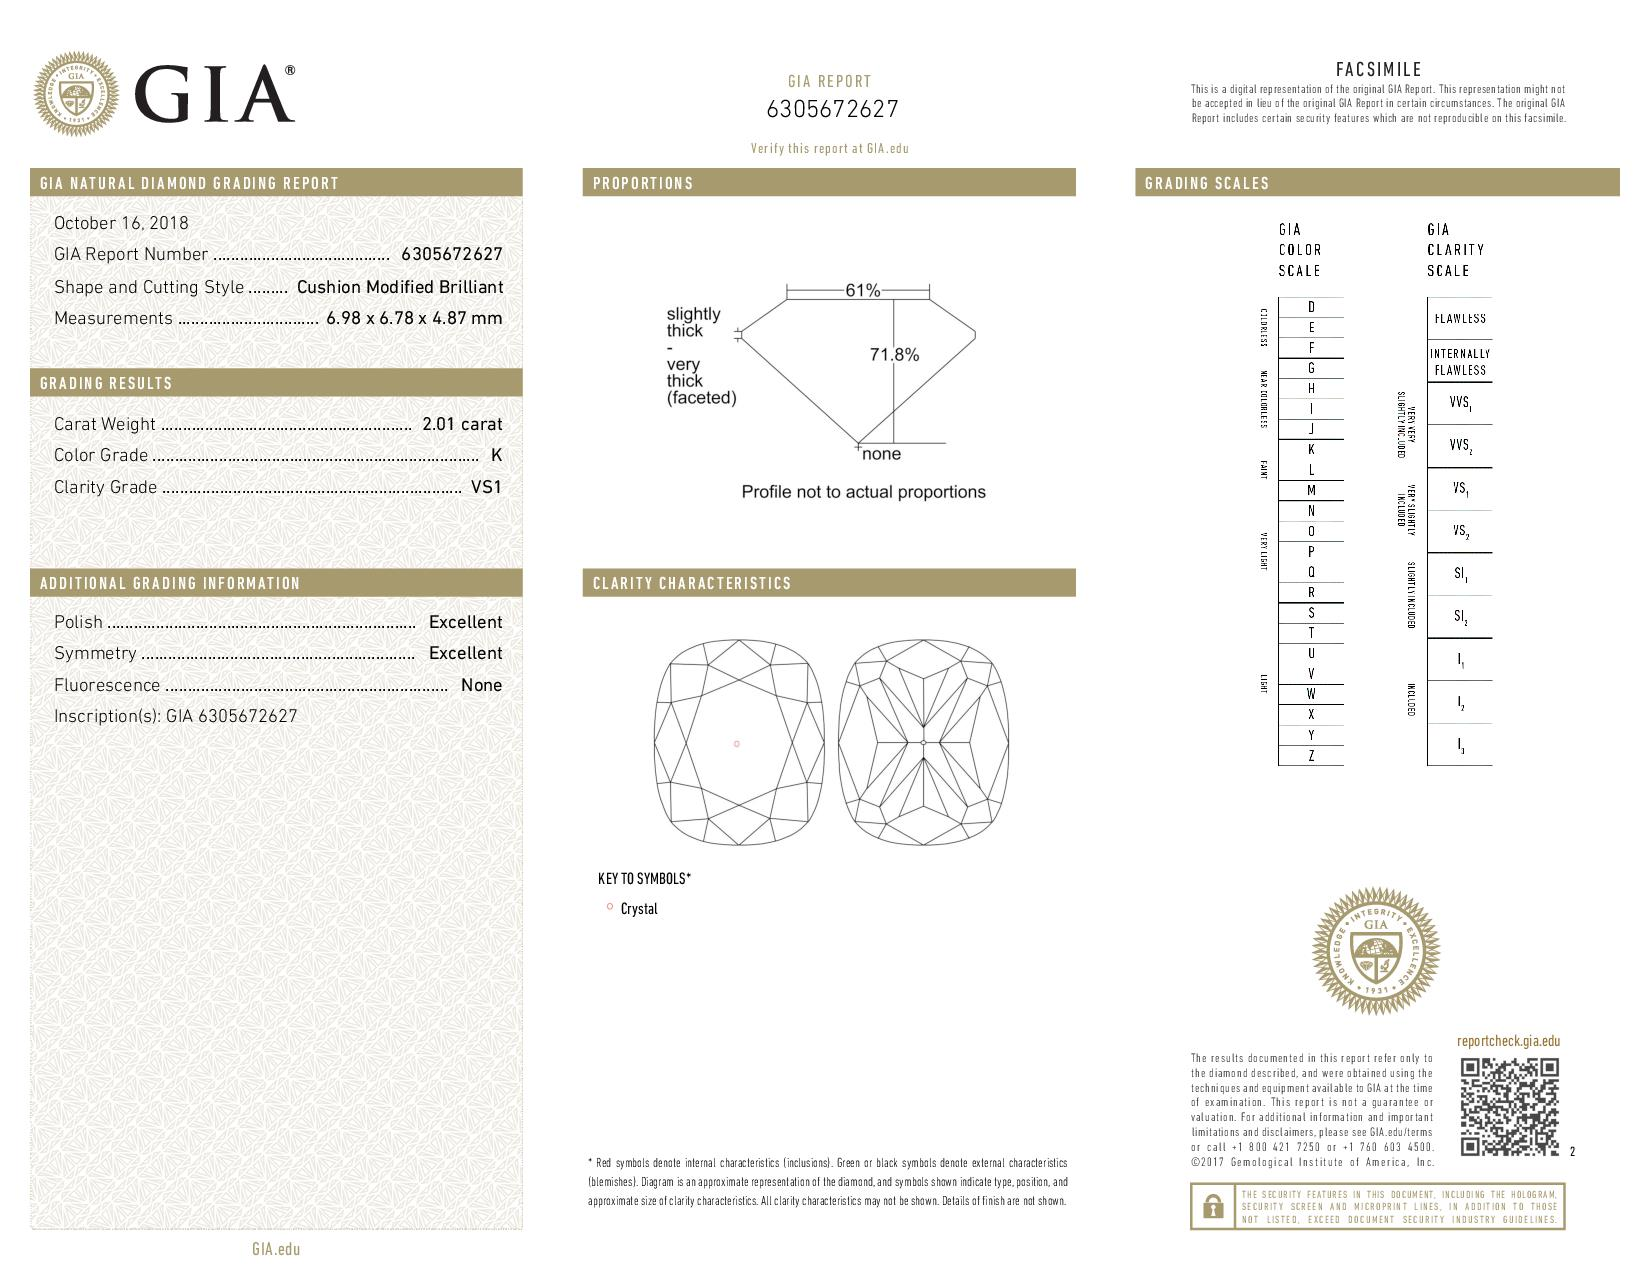 This is a 2.01 carat cushion shape, K color, VS1 clarity natural diamond accompanied by a GIA grading report.